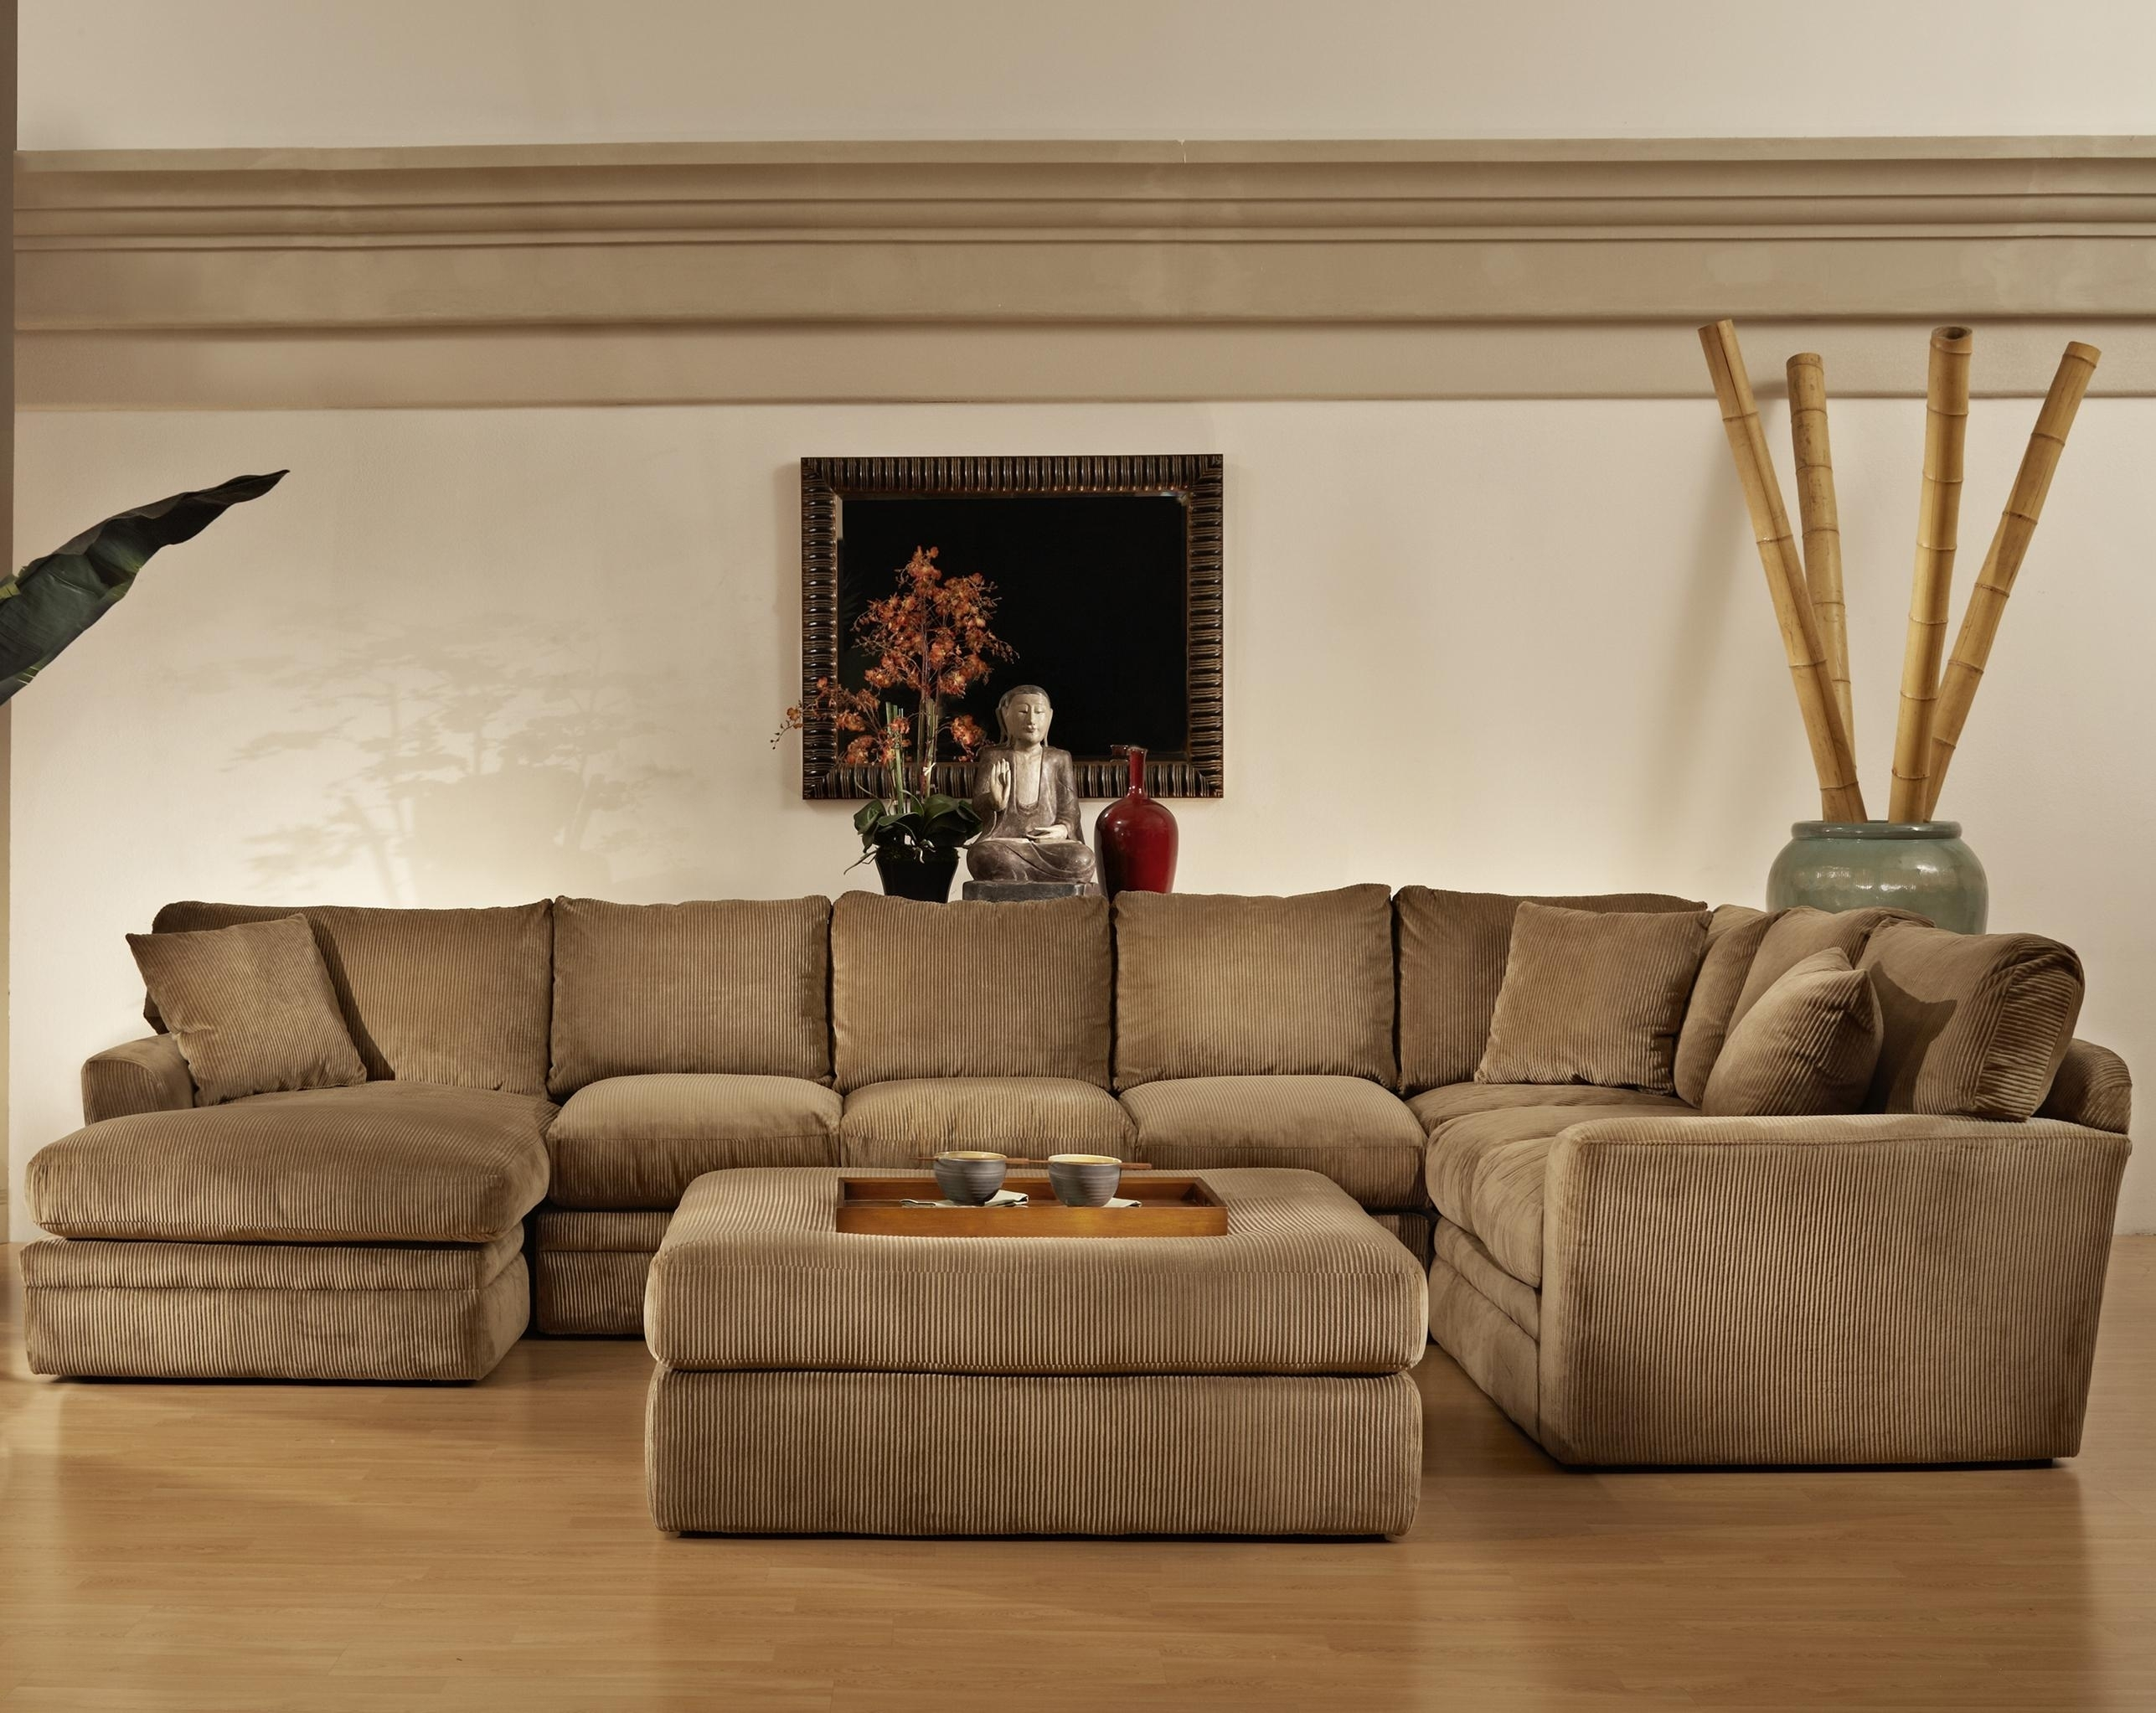 Extra Large Sectional Sofa With Chaise And Ottoman U Shaped In Brown inside Extra Large U Shaped Sectionals (Image 2 of 15)